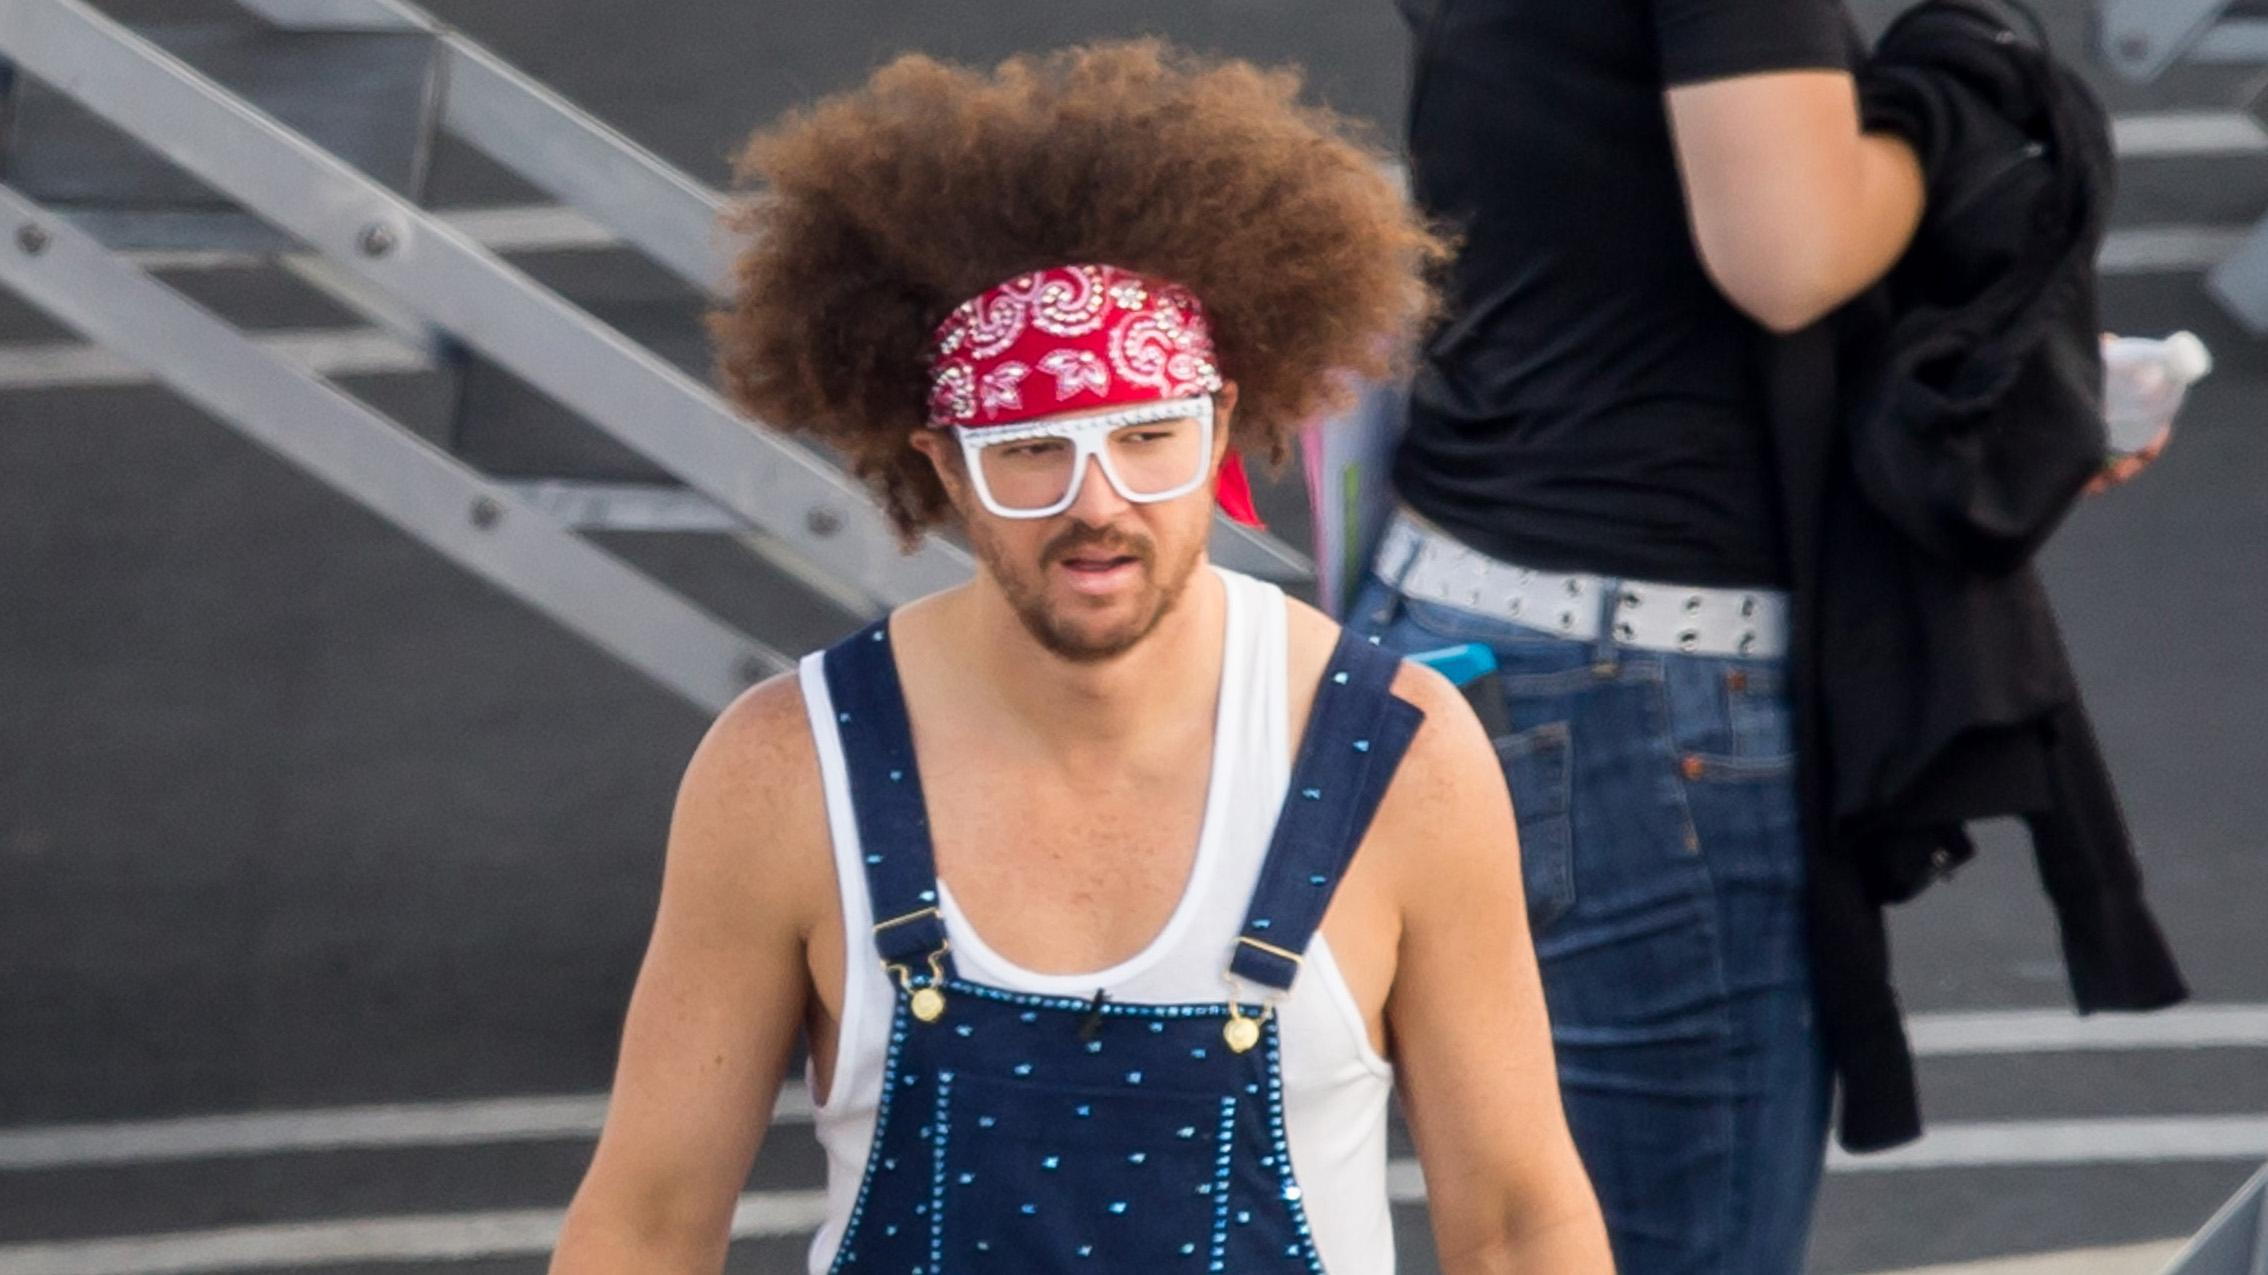 Redfoo and Emma Slater seen at the 'Dancing with the Stars' studio in Los Angeles, California